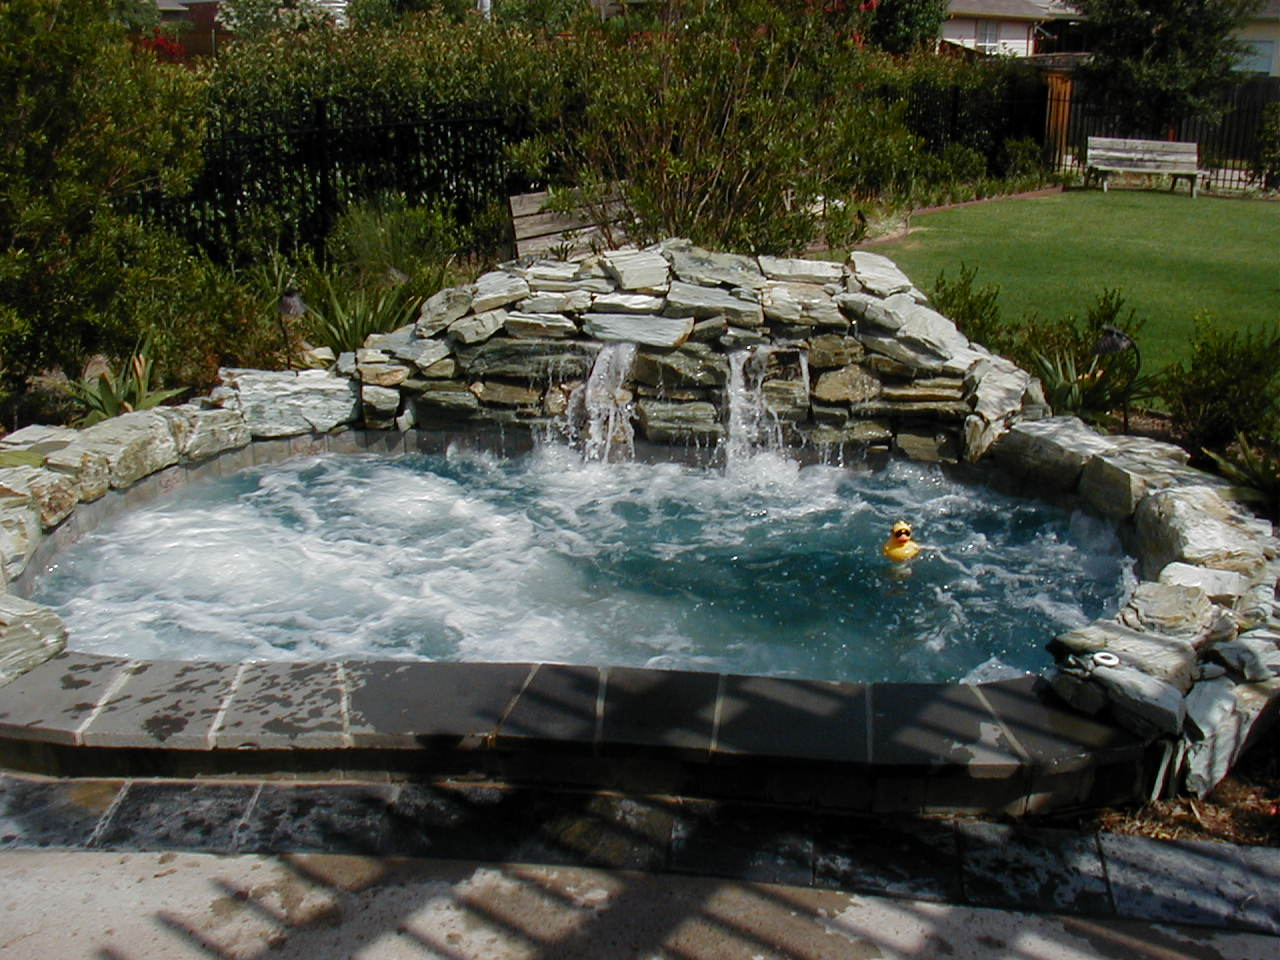 Jacuzzi Pool Pump Reviews Hot Tub Safety For Children Tipton Pools Knoxville